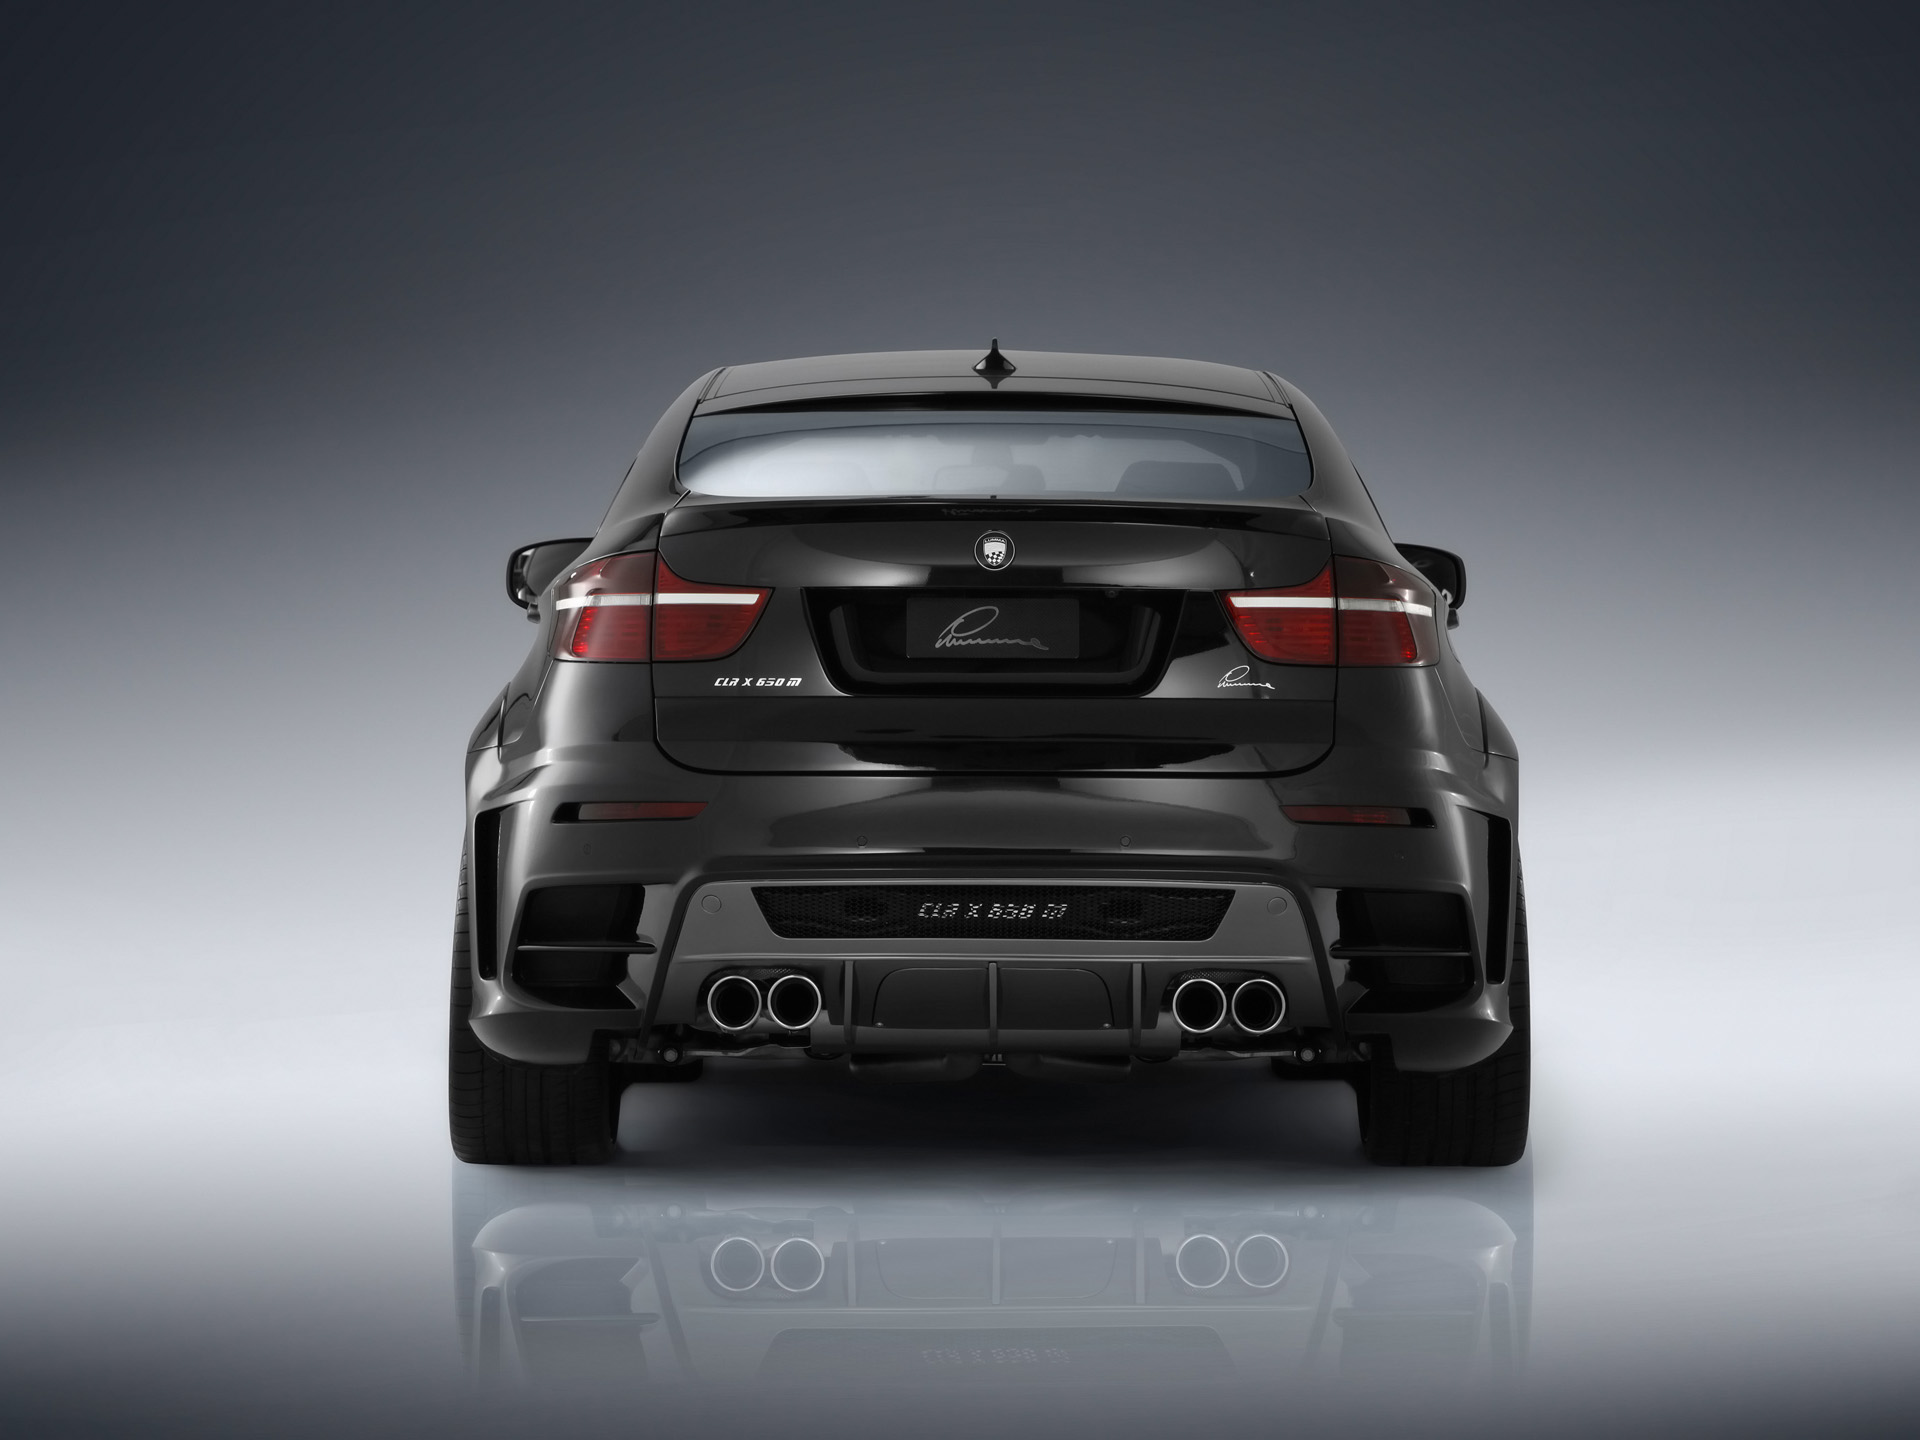 bmw x6 wallpapers archives - page 2 of 3 - hd desktop wallpapers